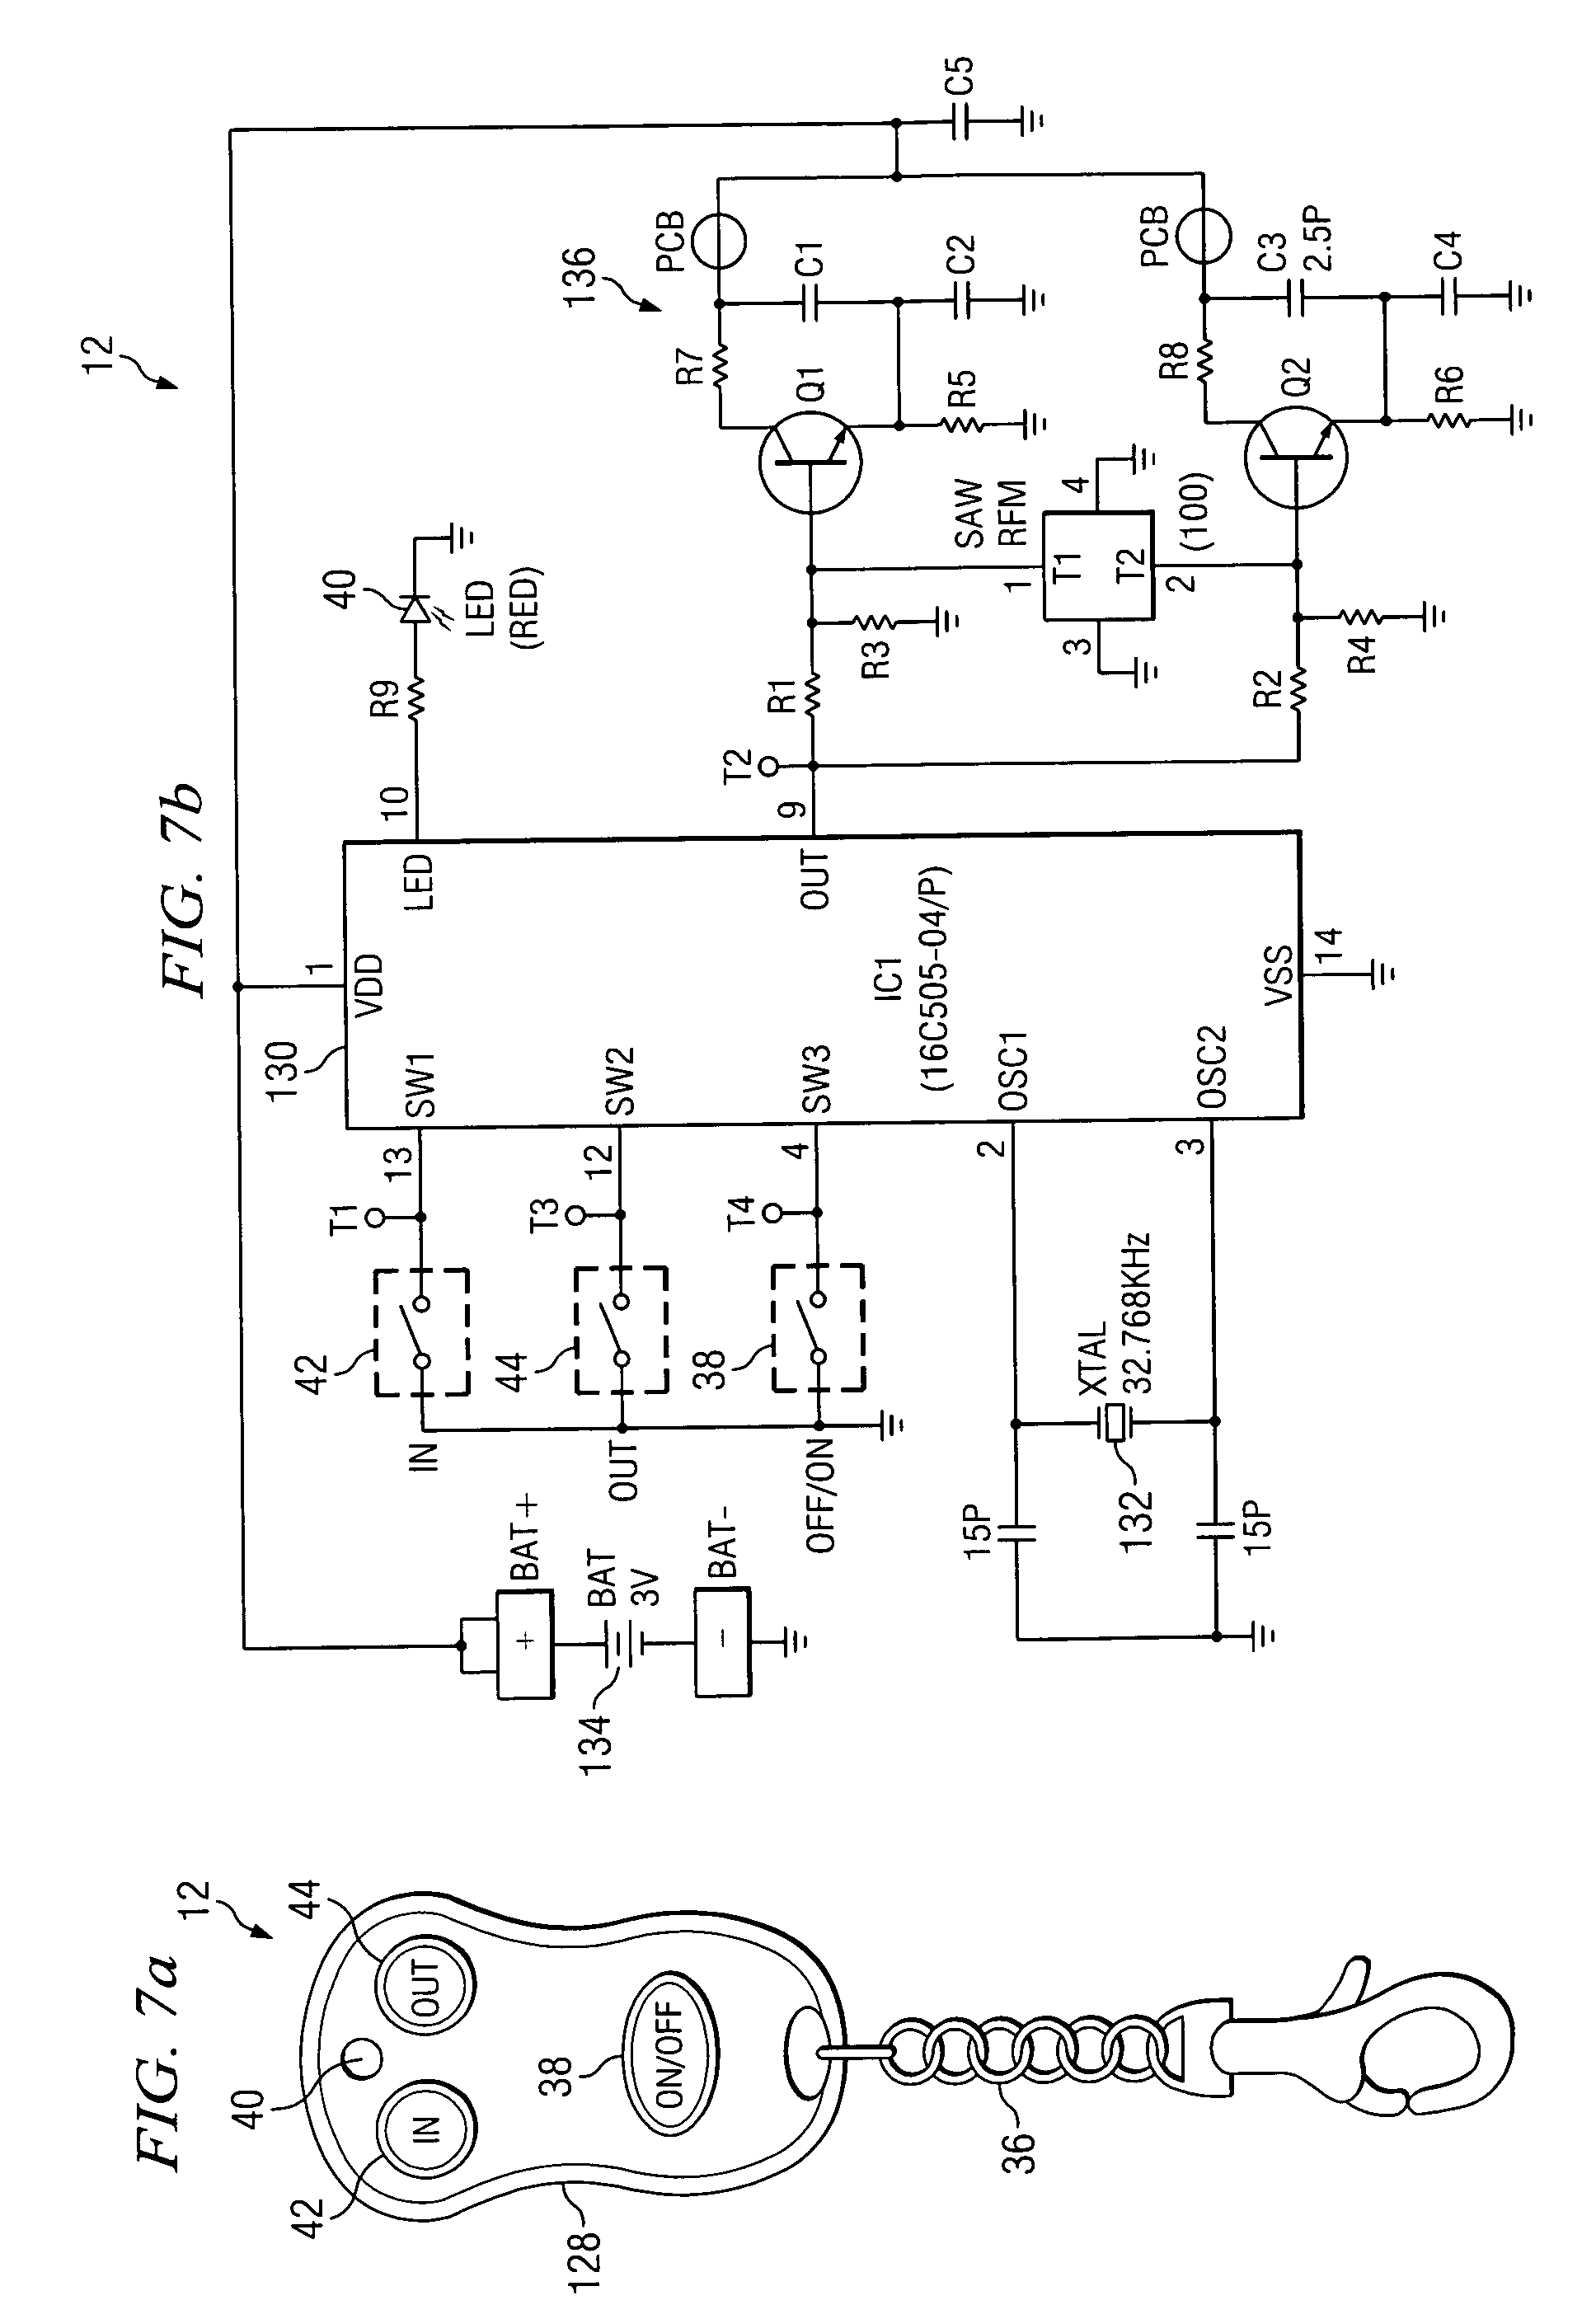 hight resolution of remote winch control wiring diagram wiring diagram badlandremote winch control wiring diagram wiring diagram u2013